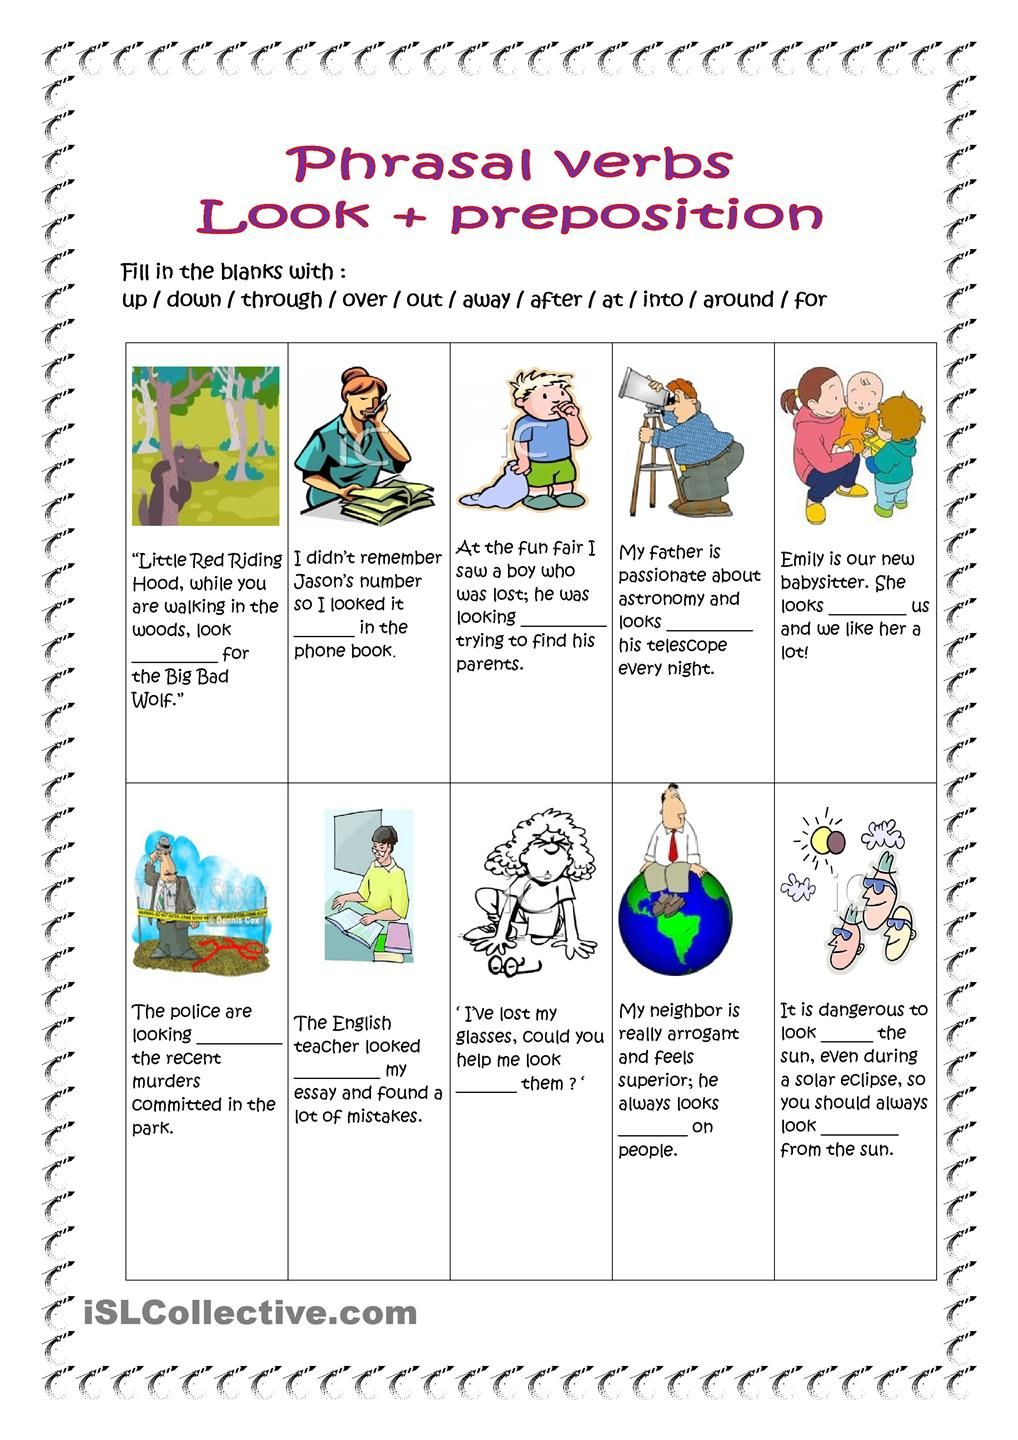 Worksheets Esl Preposition Worksheets numbers 20 100 worksheet free esl printable worksheets made by students need to fill in the blanks with right preposition phrasal verbs reading writing fun activities games intermedia